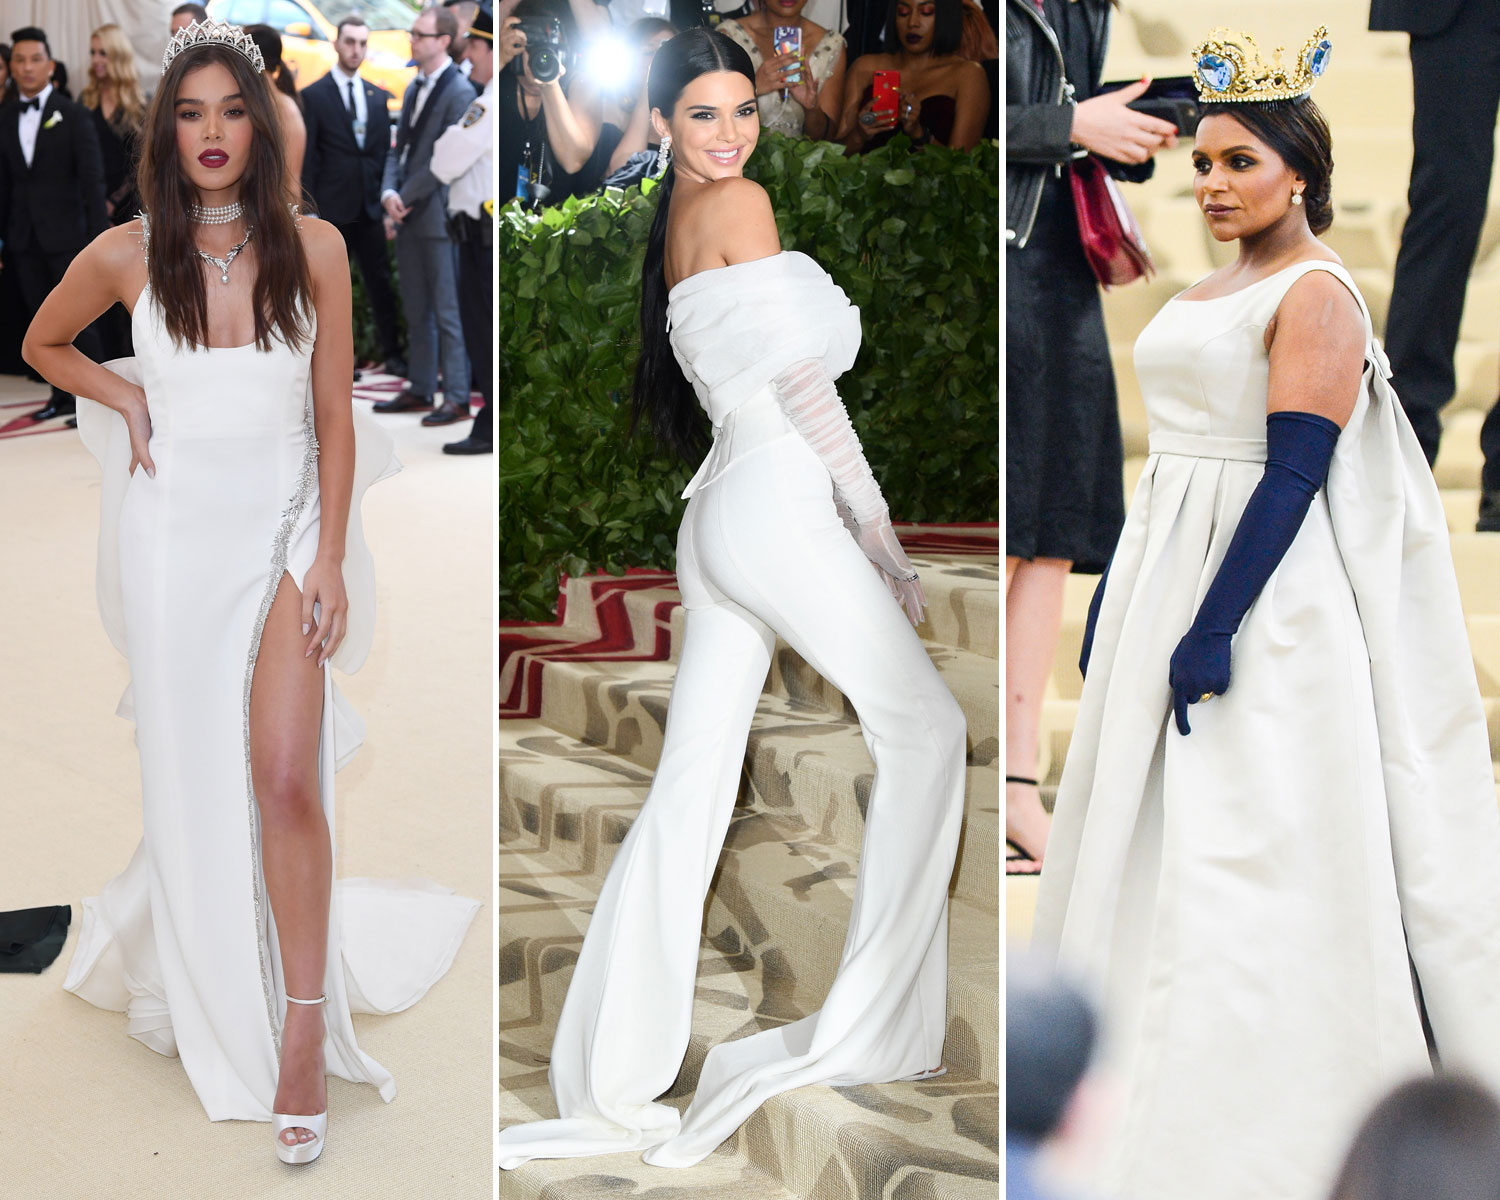 Custom All Stars >> 10 Ethereal, Bridal-Inspired Looks on the Met Gala 2018 Red Carpet: Pics